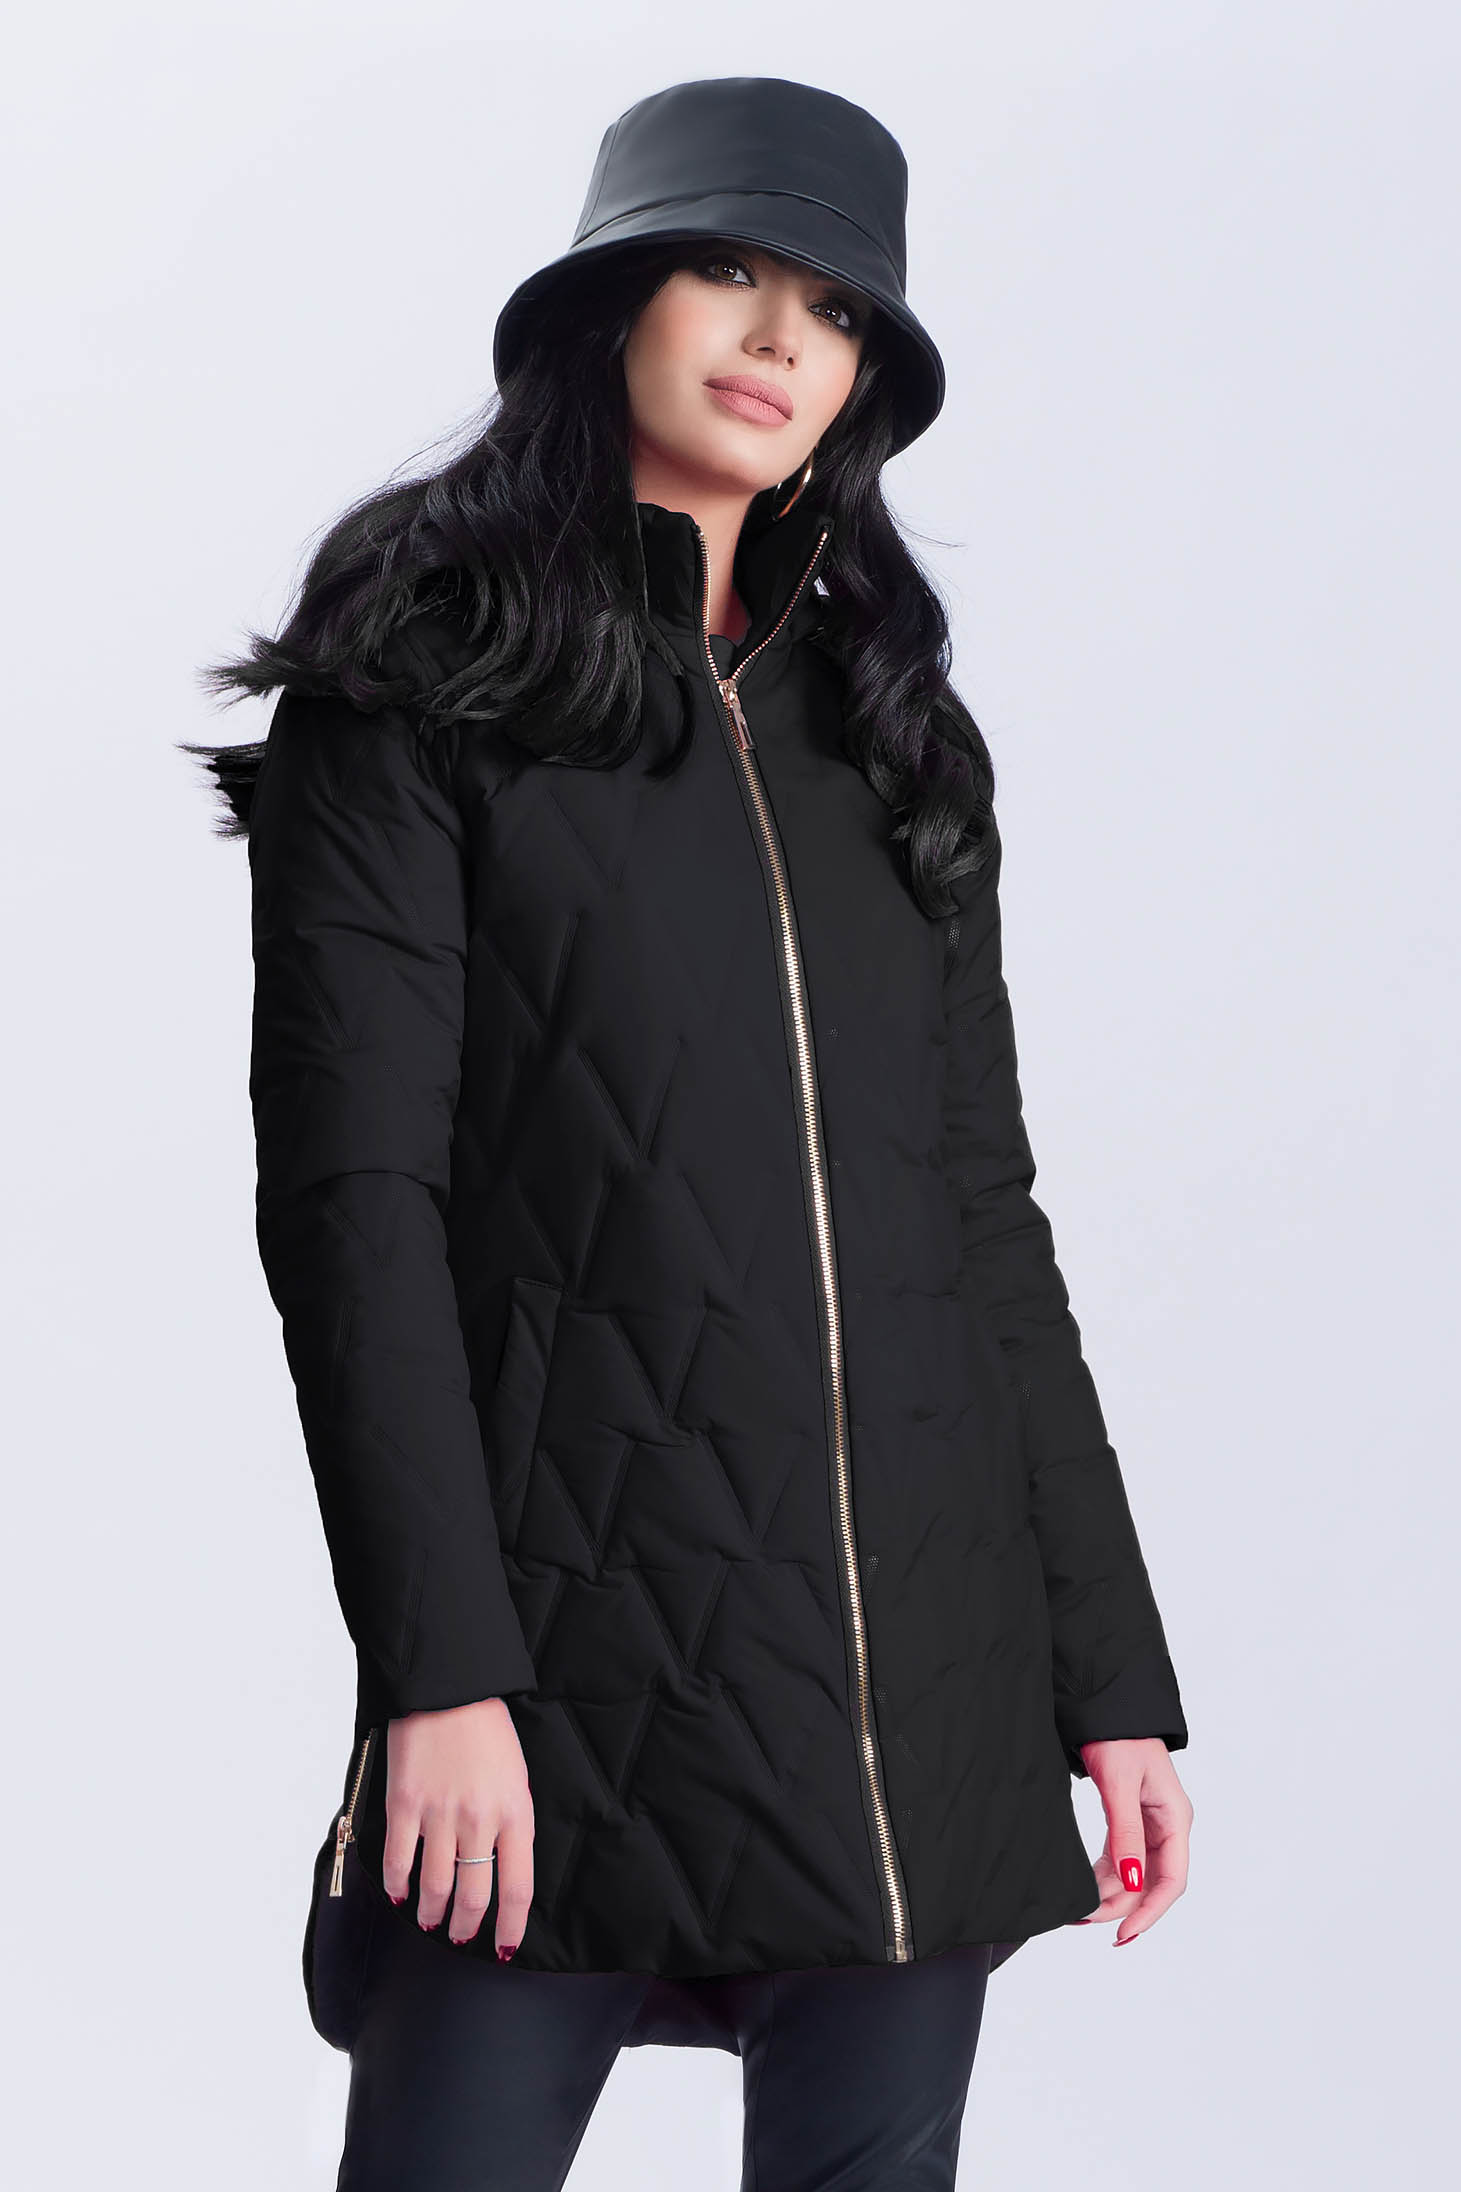 Jacket asymmetrical casual black from slicker the jacket has hood and pockets